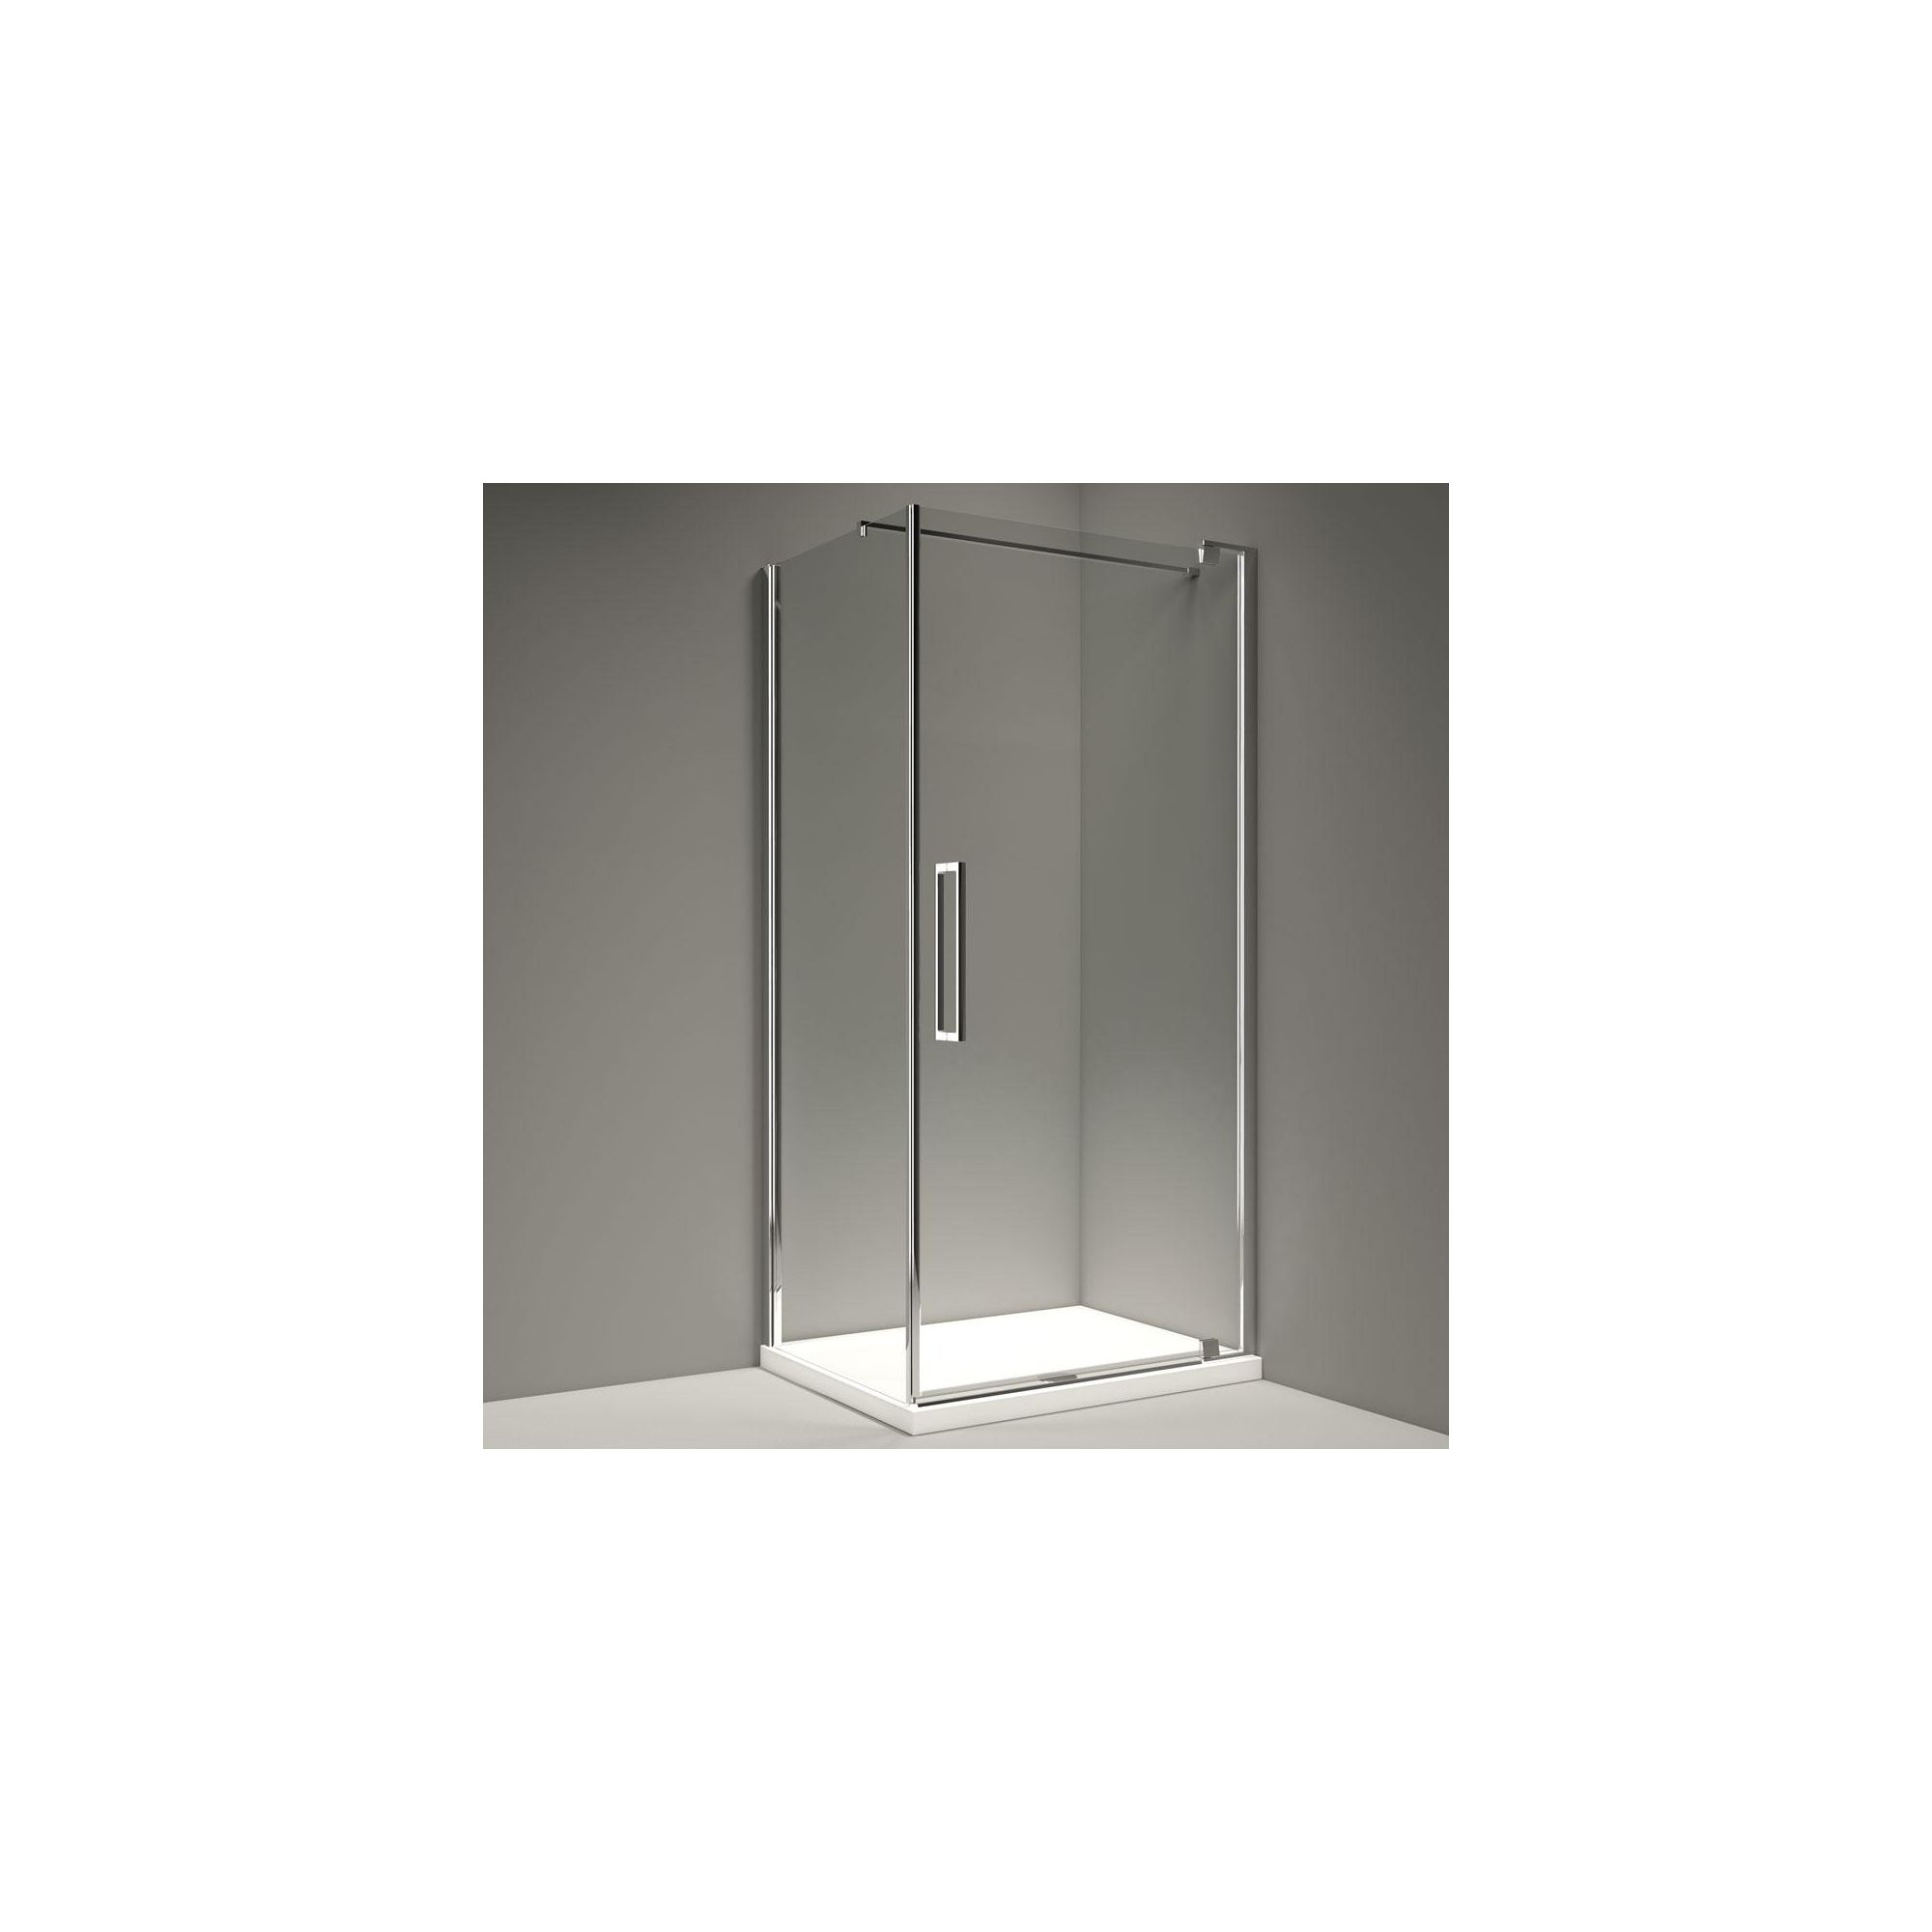 Merlyn Series 10 Pivot Shower Door, 800mm Wide, 10mm Smoked Glass at Tesco Direct